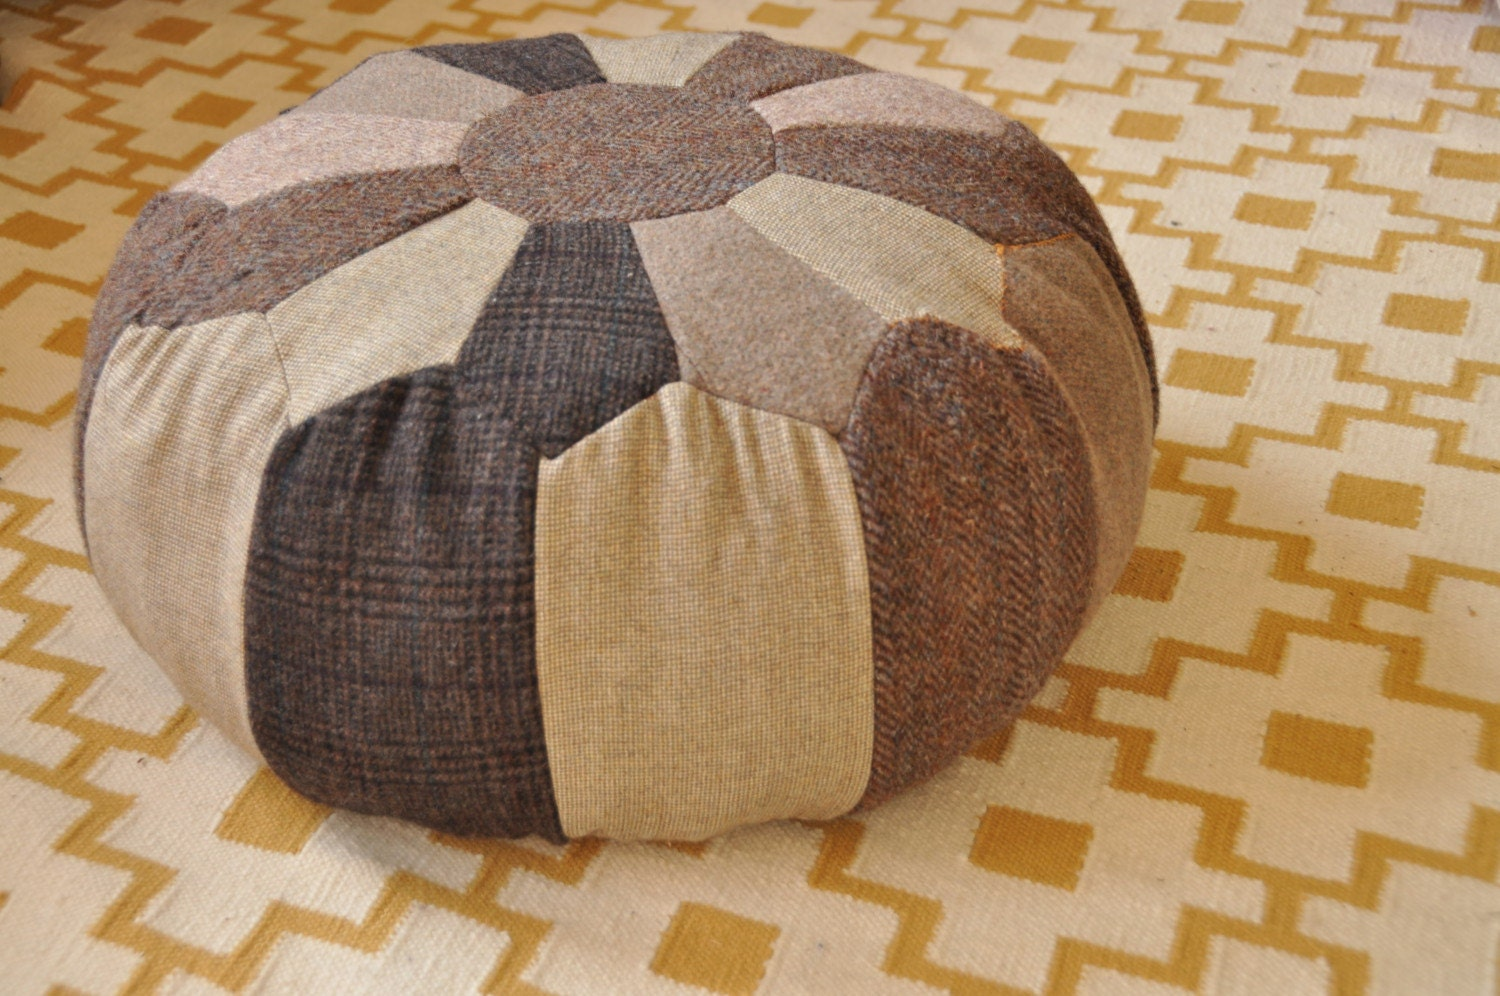 Moroccan style handmade pouf floor pillow seat...made from